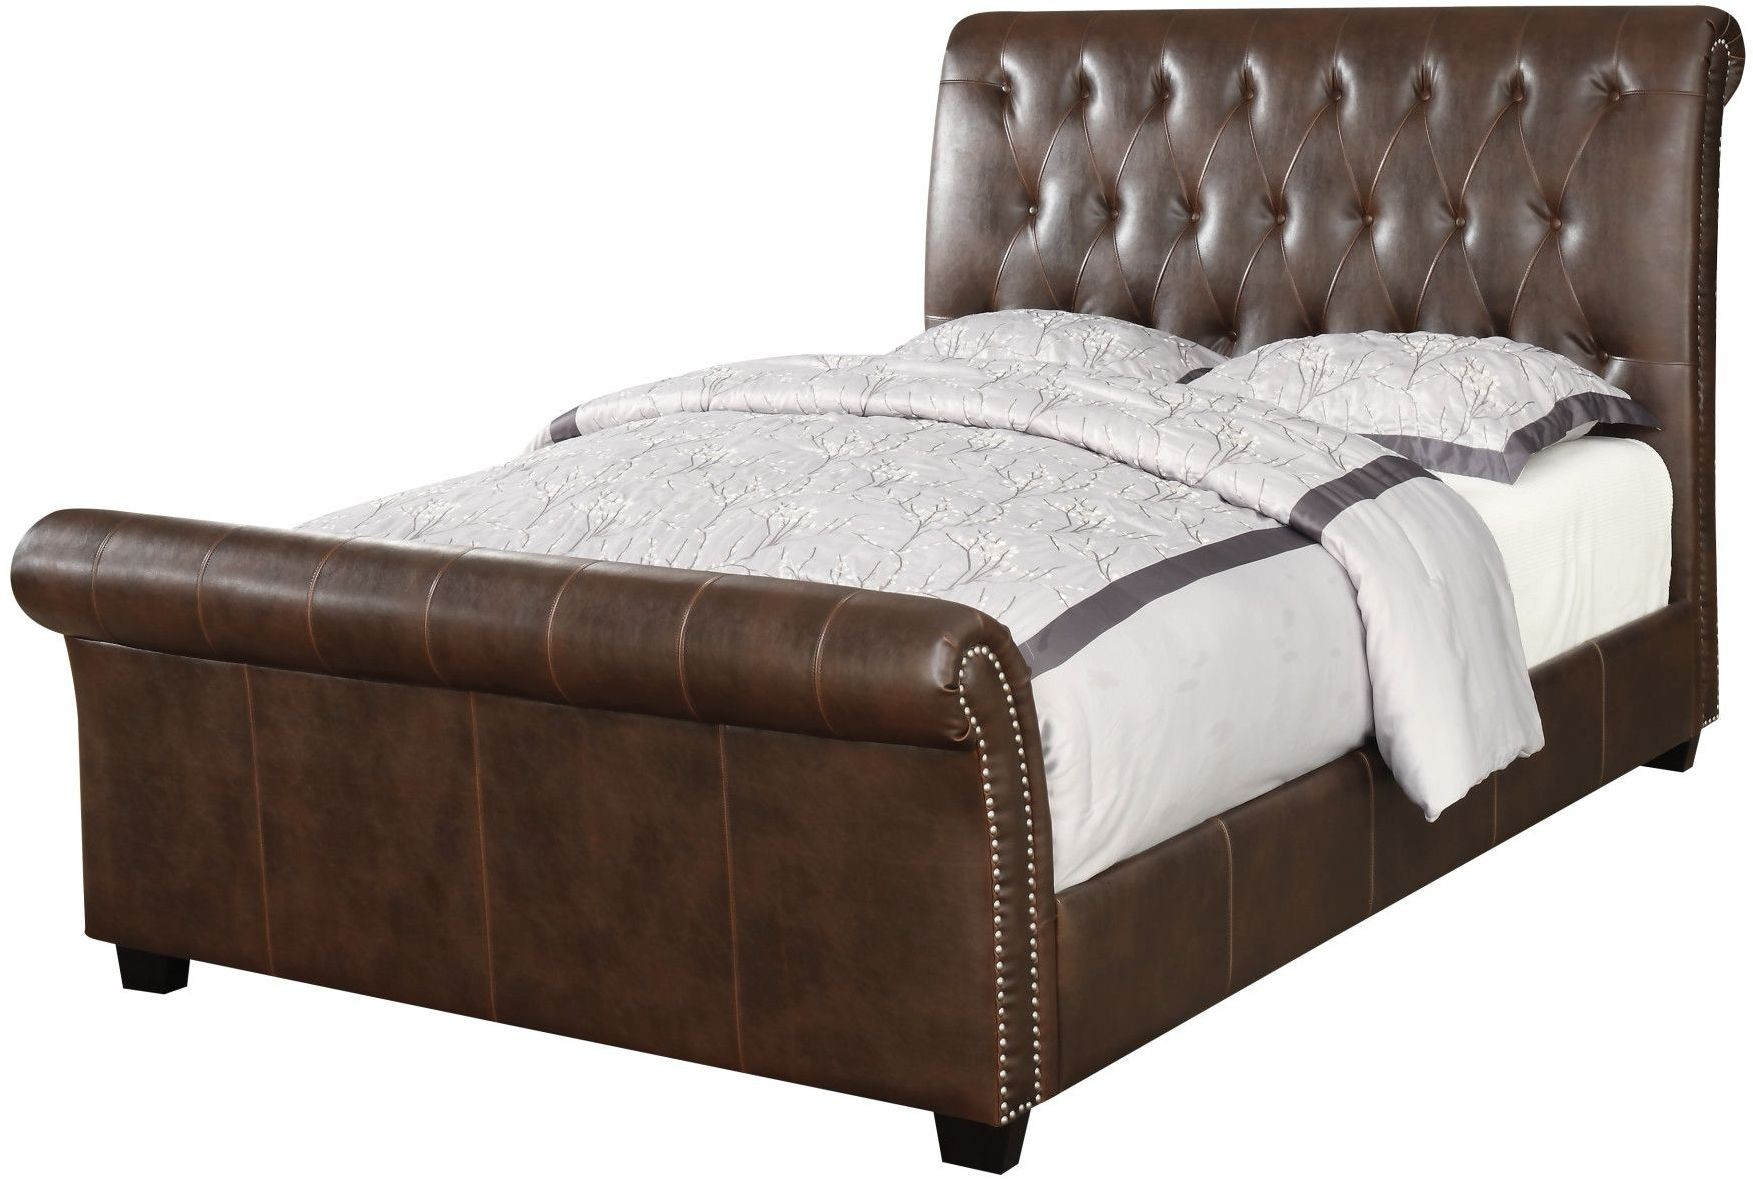 Innsbruck Ii Brown King Upholstered Sleigh Bed From